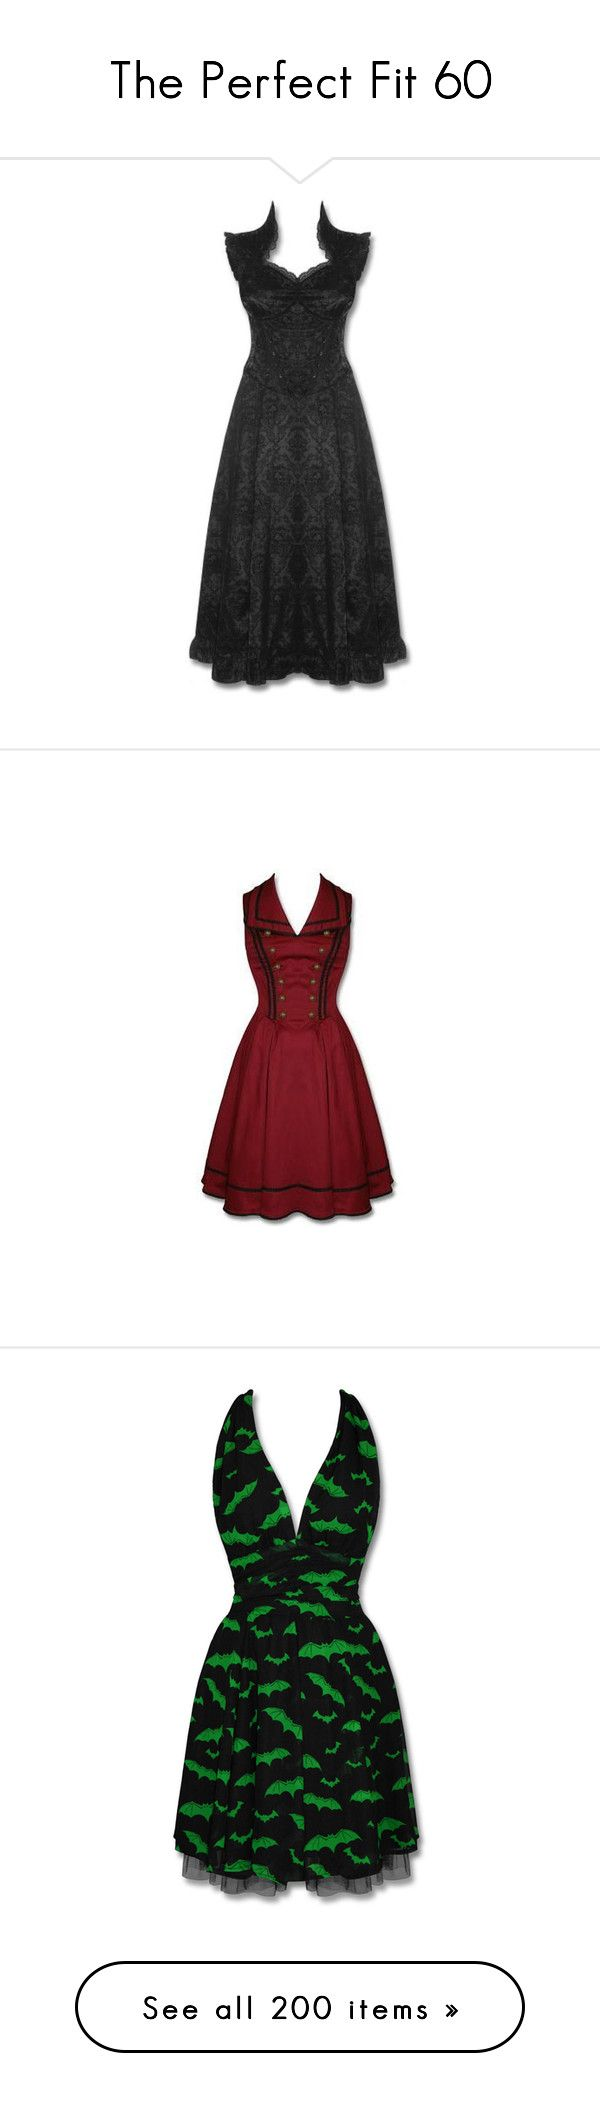 """""""The Perfect Fit 60"""" by myamane ❤ liked on Polyvore featuring dresses, Gowns, lattori, victorian dress, black corset dress, gothic corset, long black dress, skull corset, burgundy dress and red latex dress"""